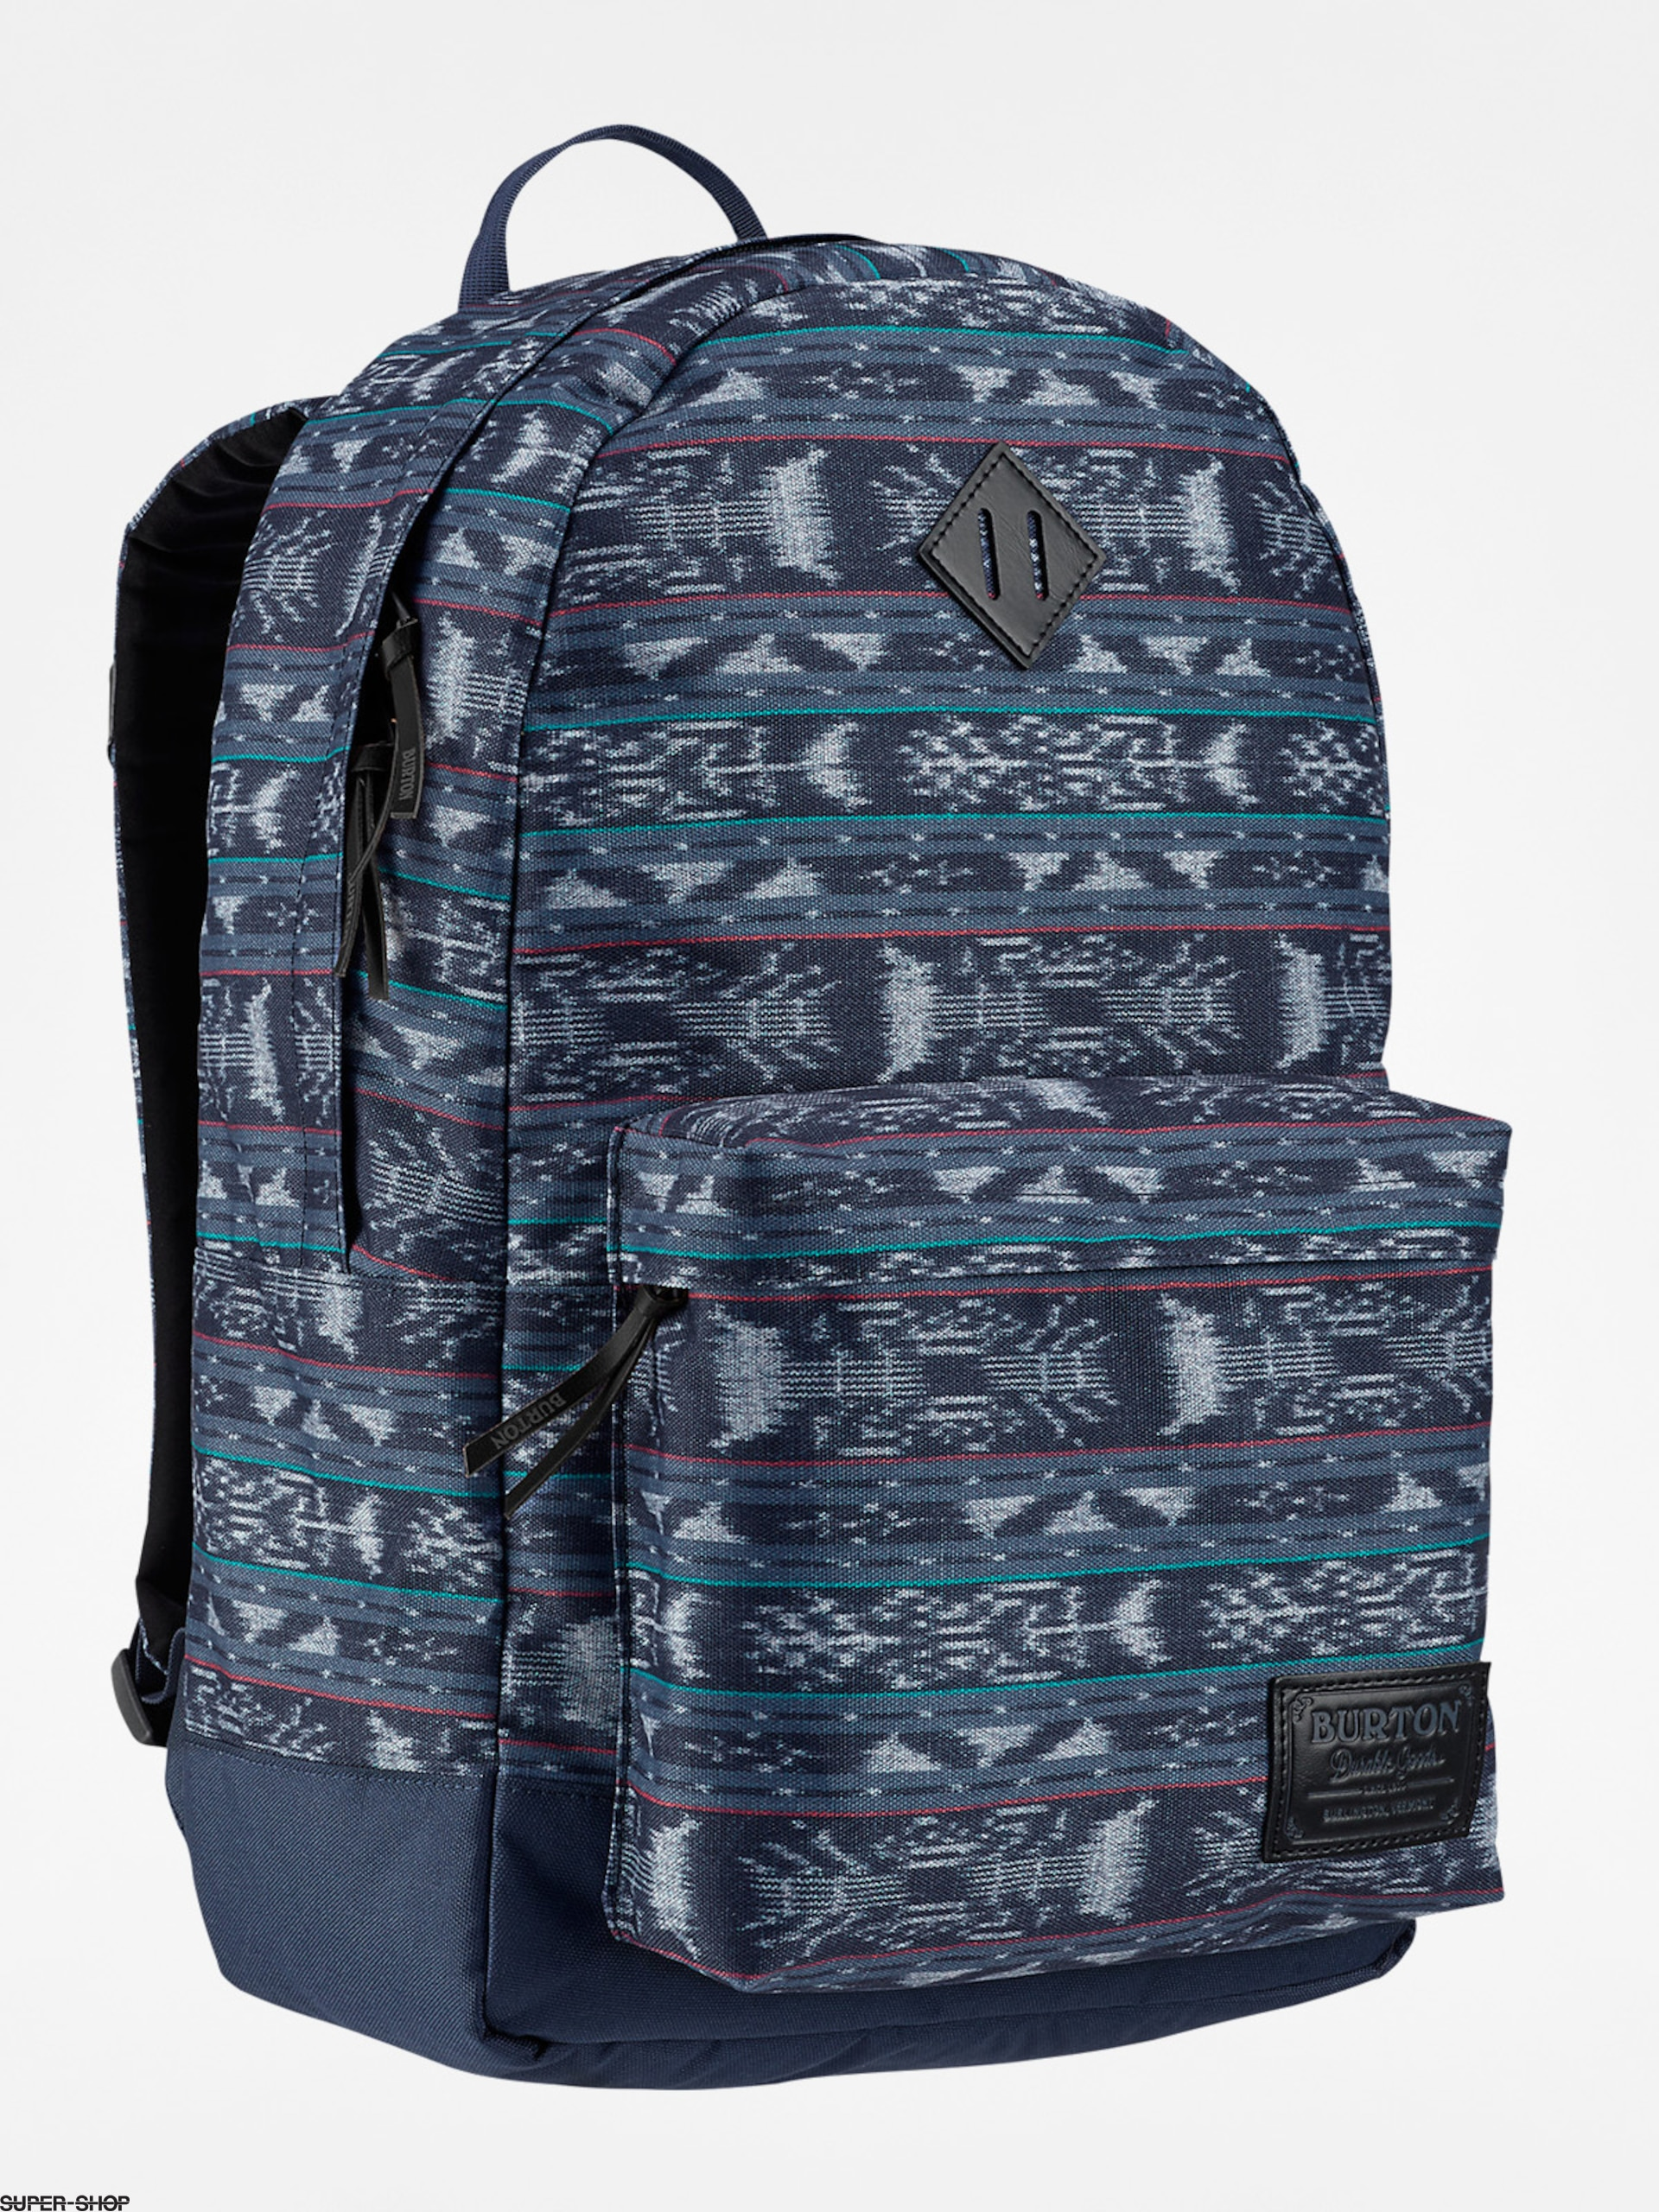 Burton Backpack Kettle Pack Wmn (guatikat yarn dye)